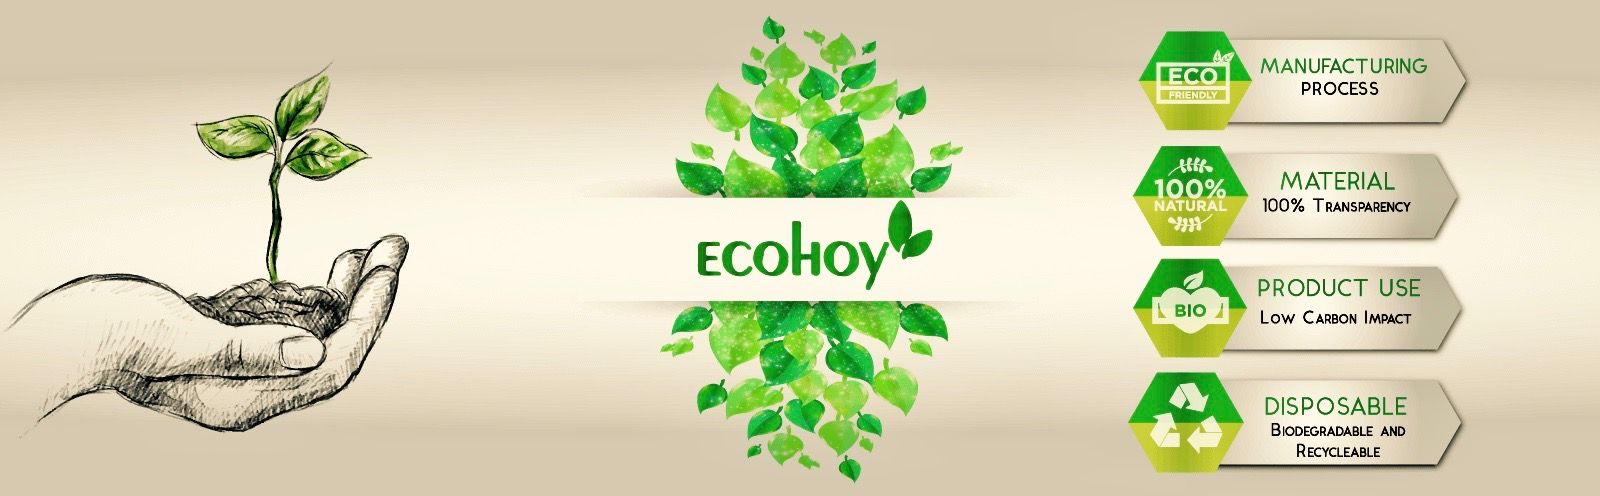 Ecohoy | Online shop for Eco-friendly and Sustainable Products